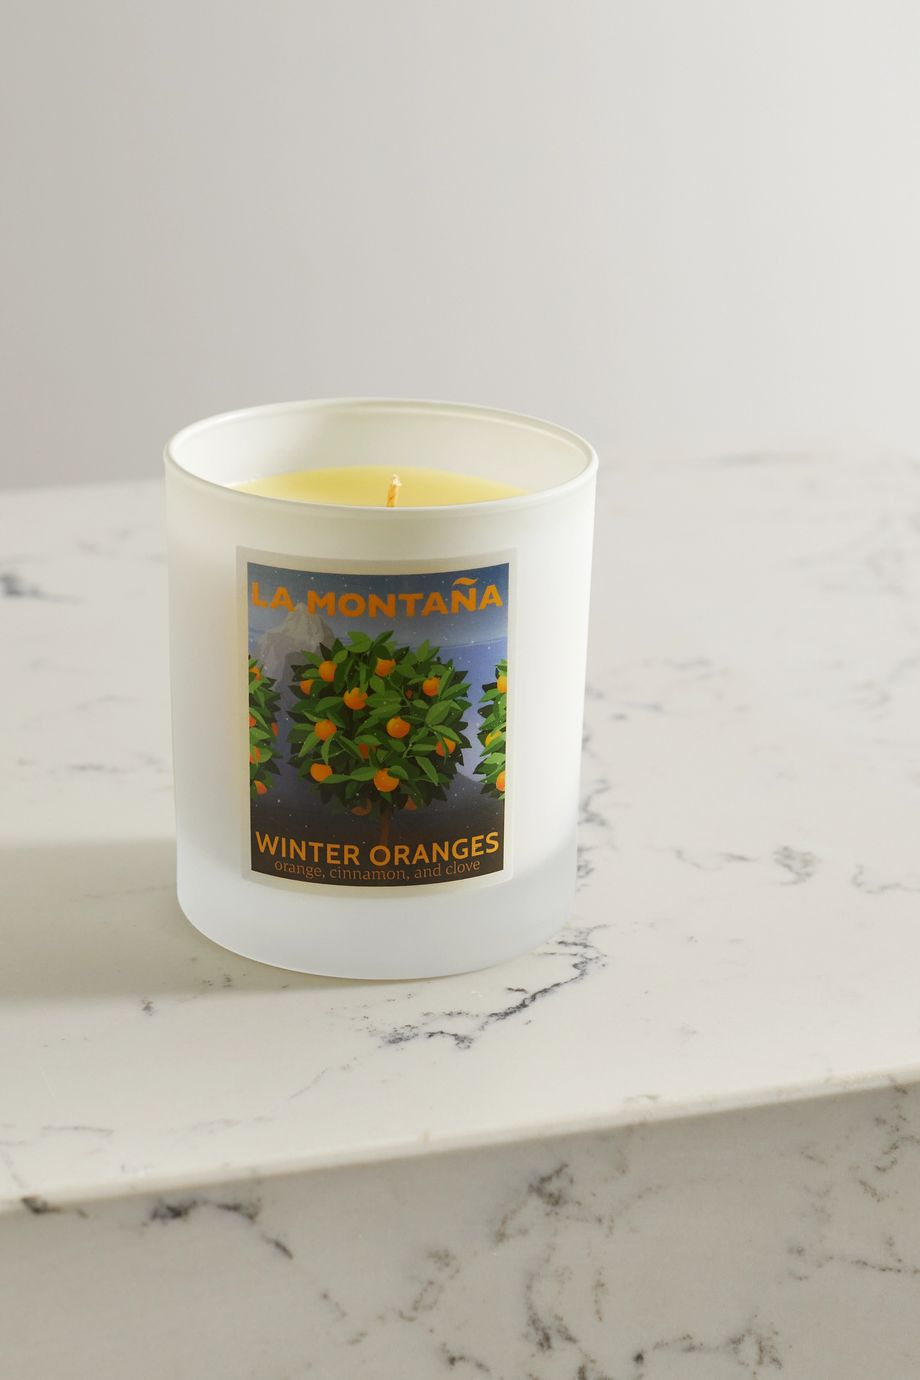 La Montaña Winter Oranges scented candle, 220g